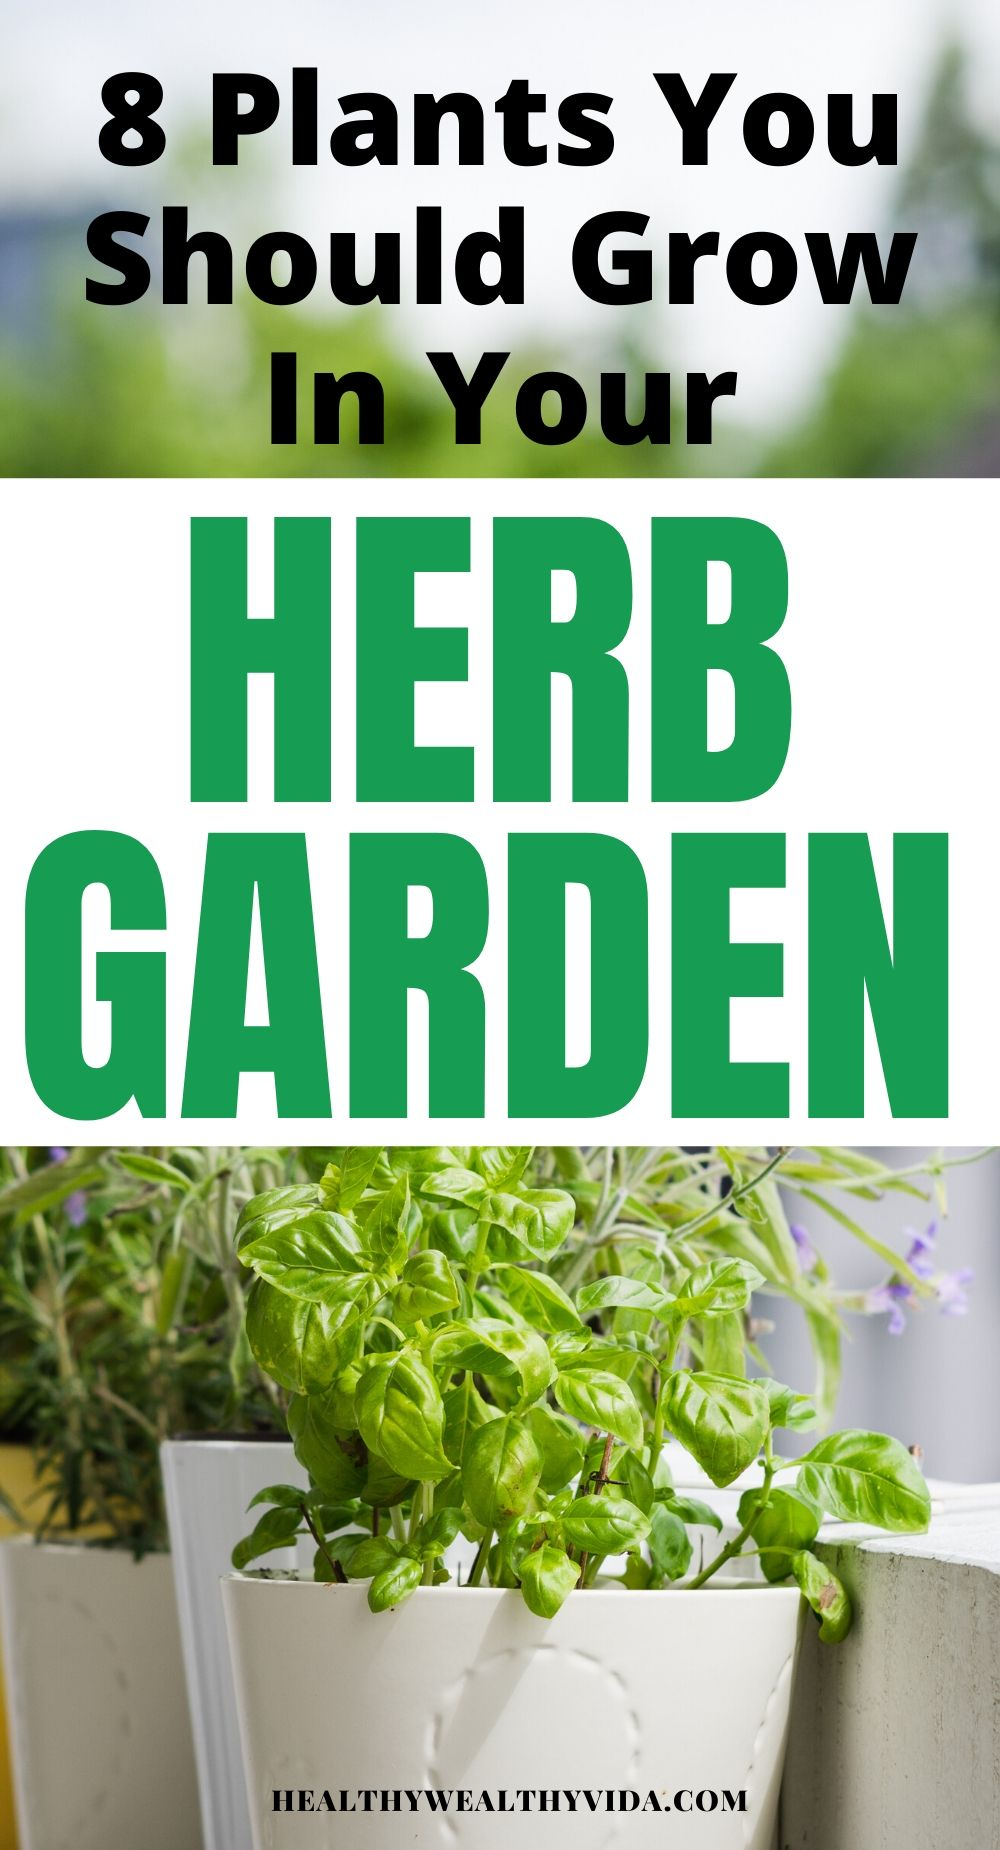 8 Plants You Should Grow In Your Outdoor Herb Garden